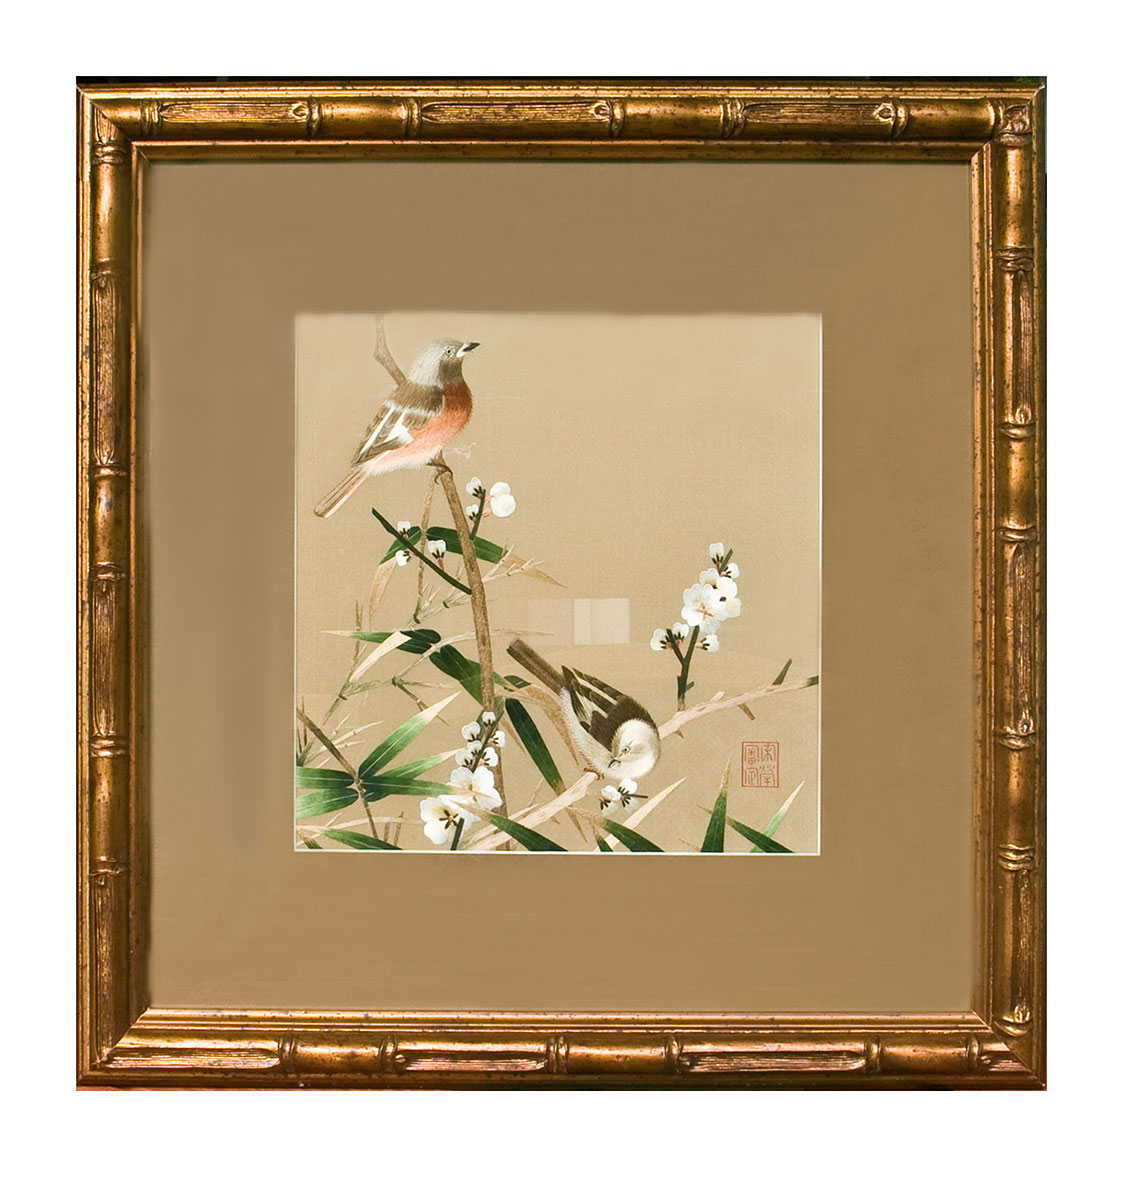 Framed painting of birds